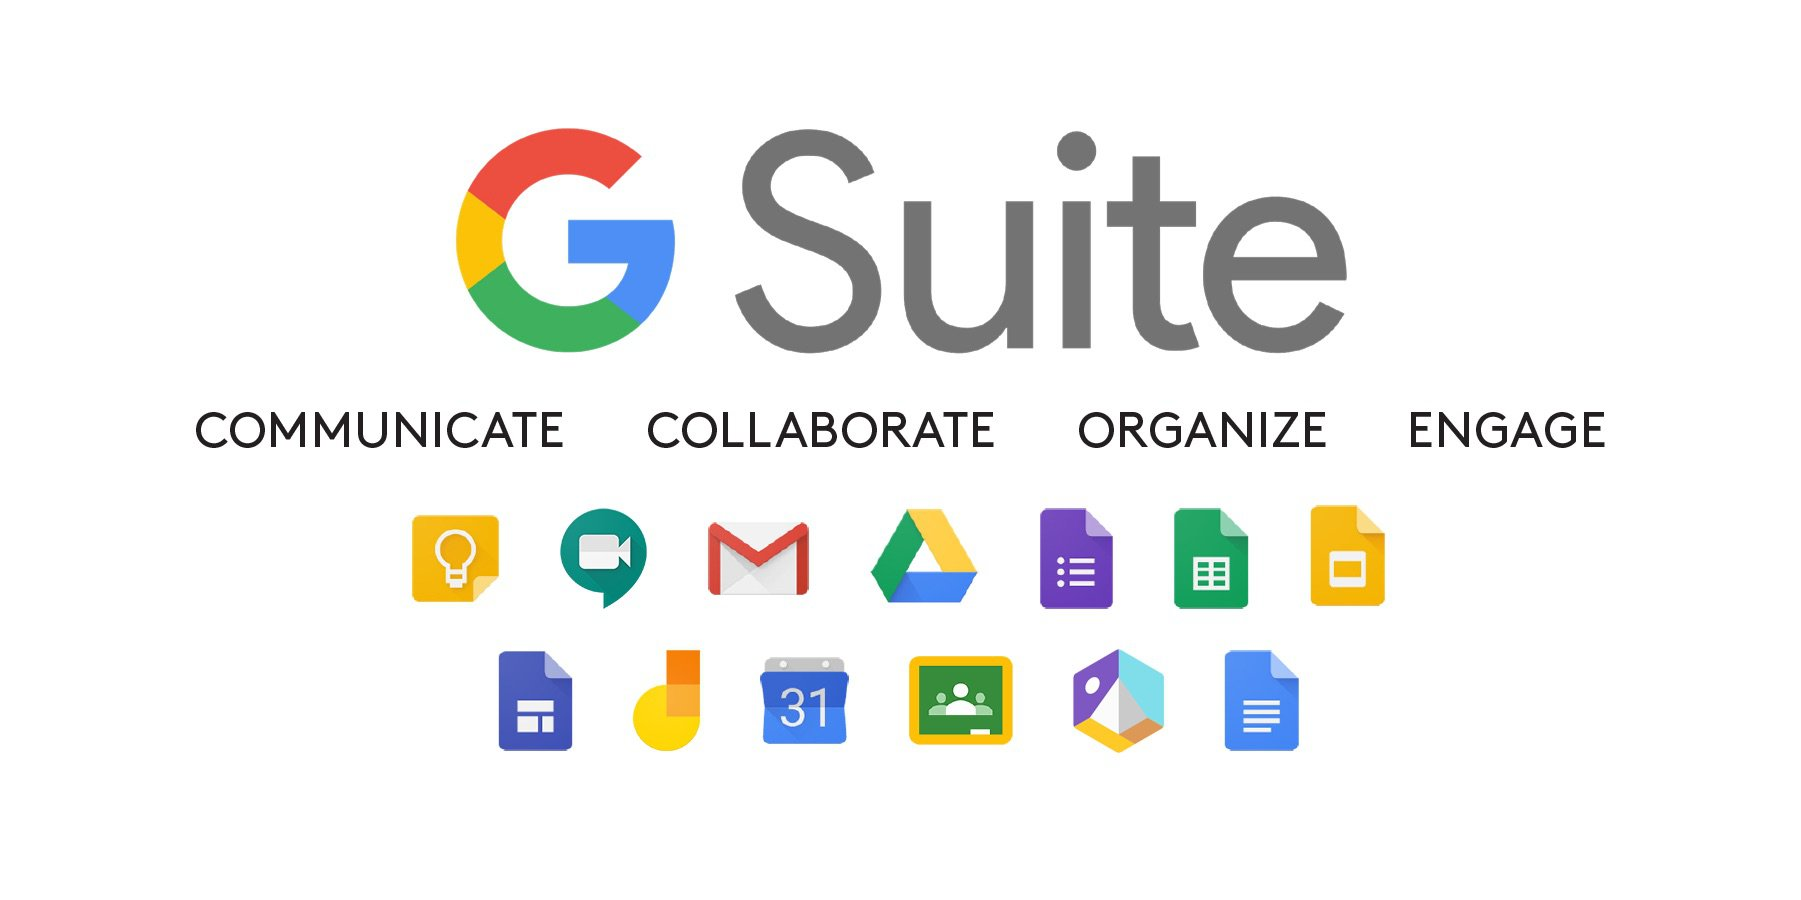 About G Suite